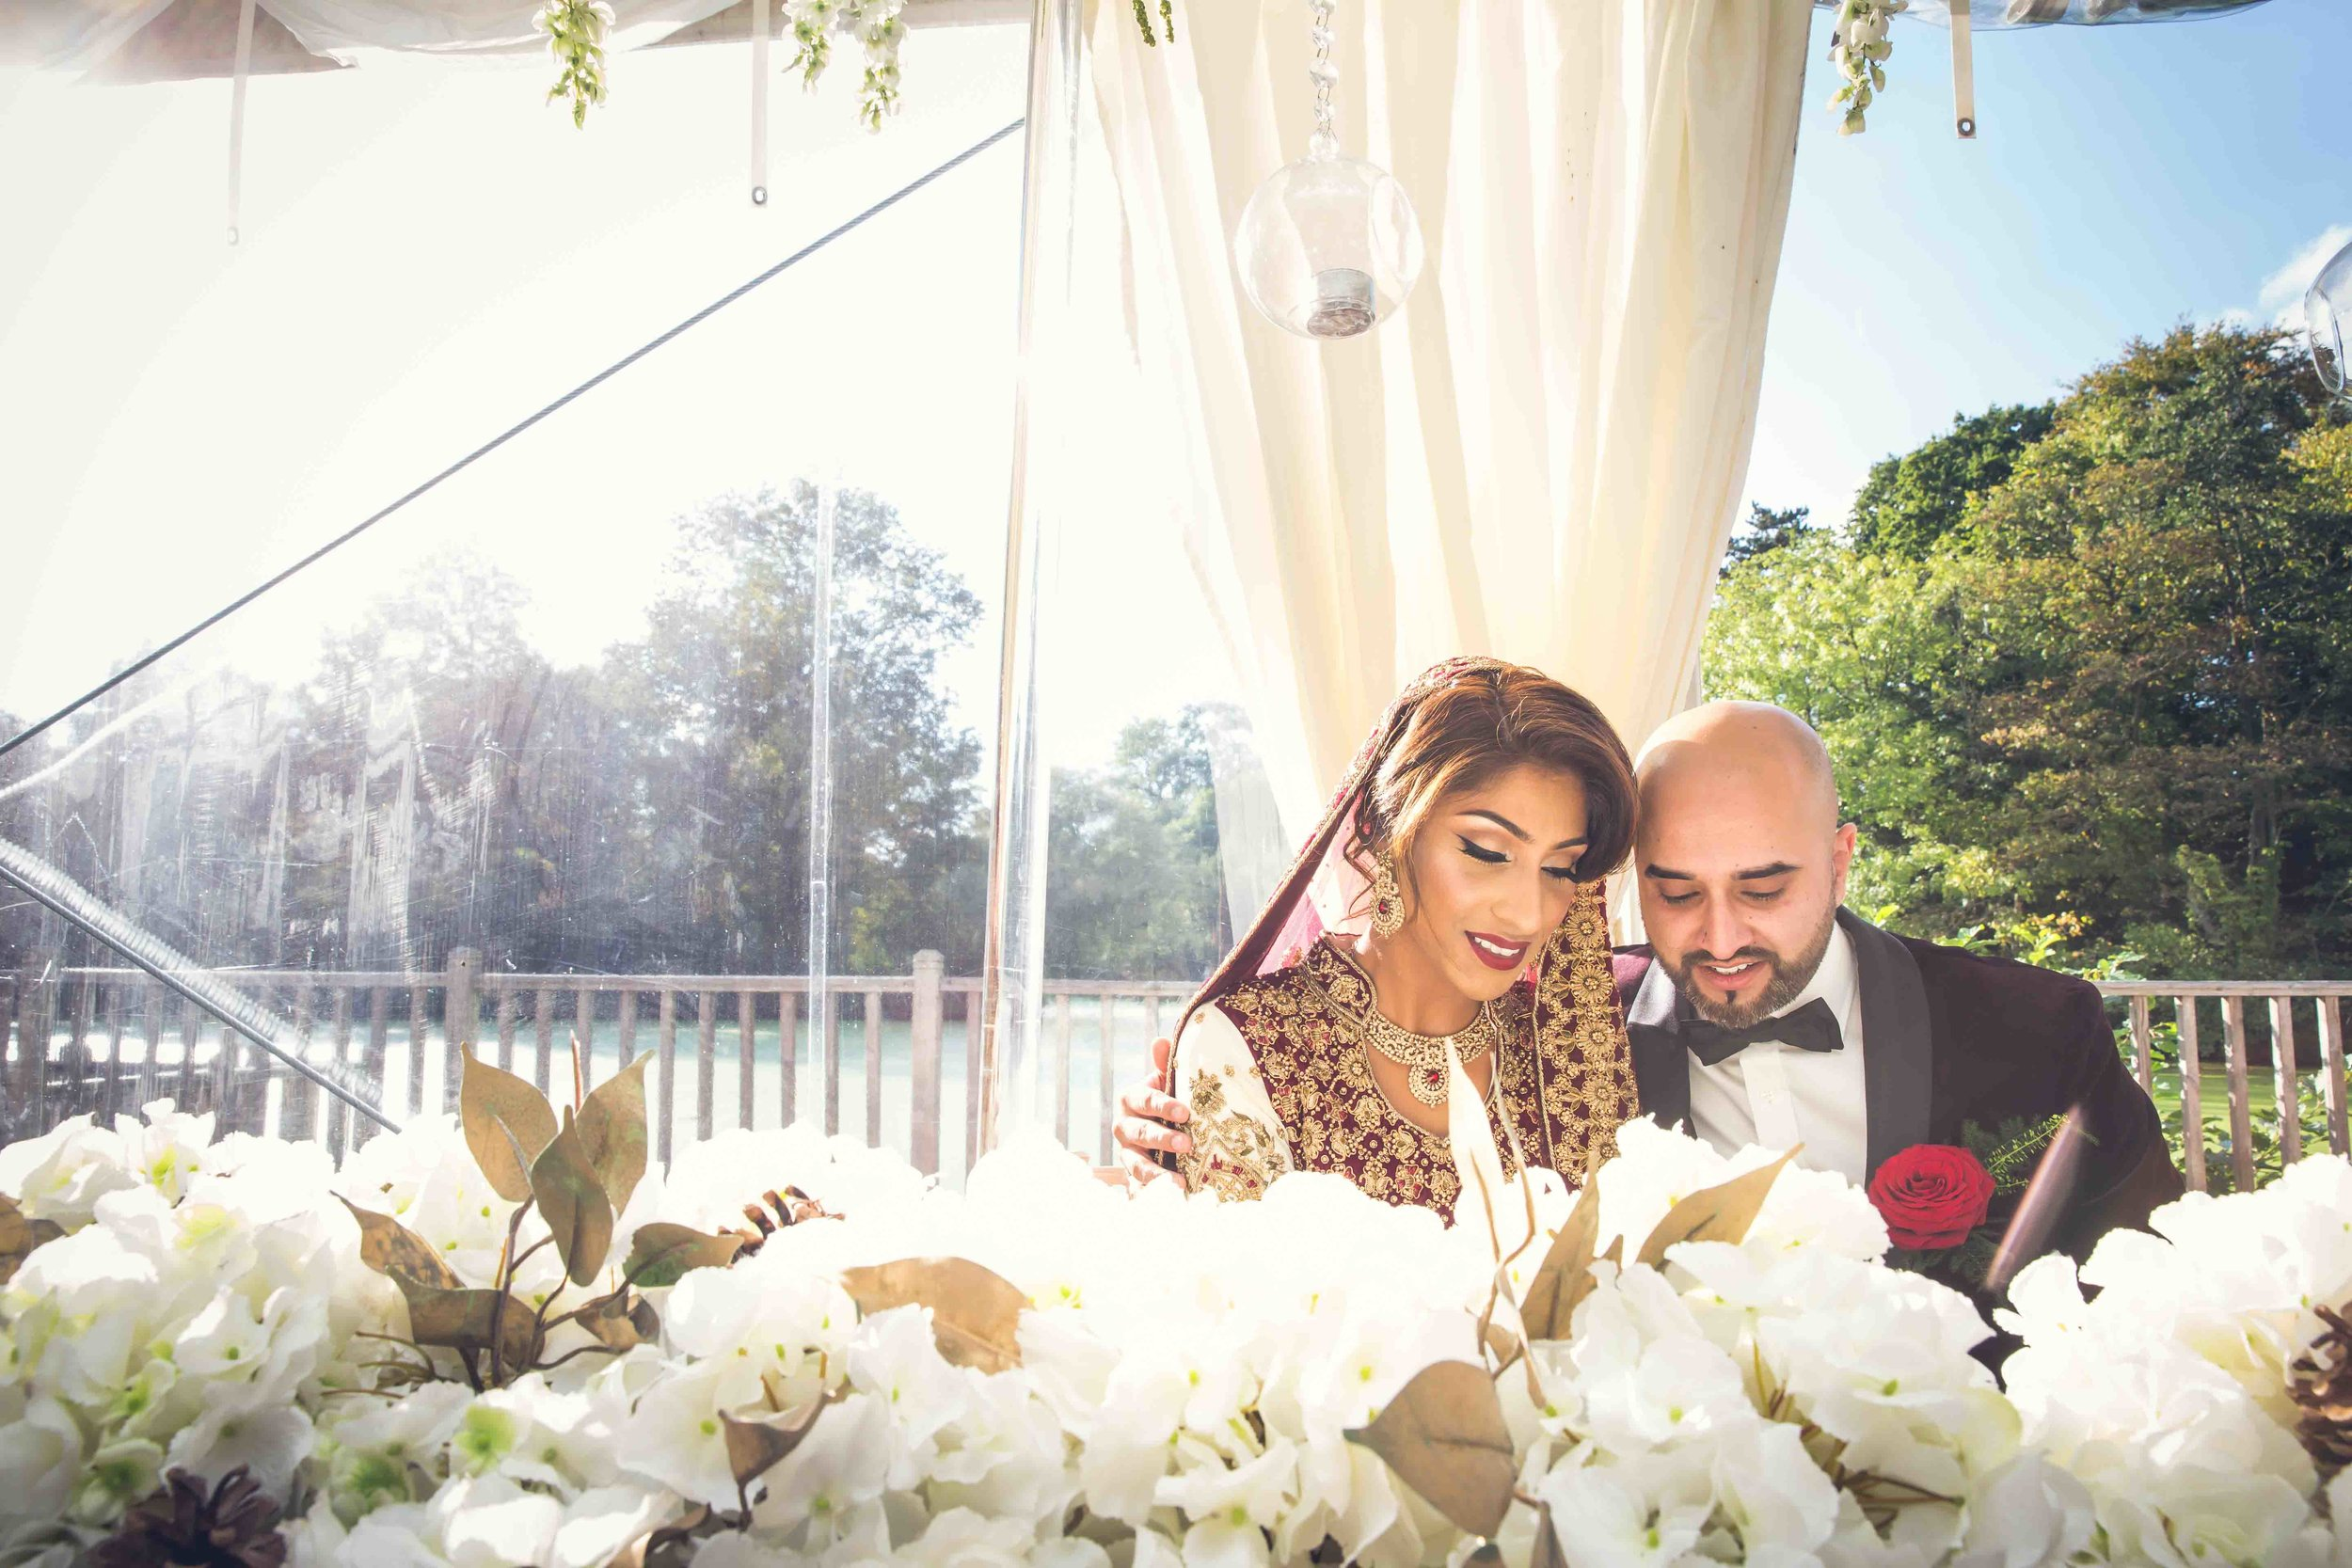 Asian Wedding Photographer Opu Sultan Photography Lyme Park Scotland Edinburgh Glasgow London Manchester Liverpool Birmingham Wedding Photos prewed shoot Azman & Saira Blog-80.jpg